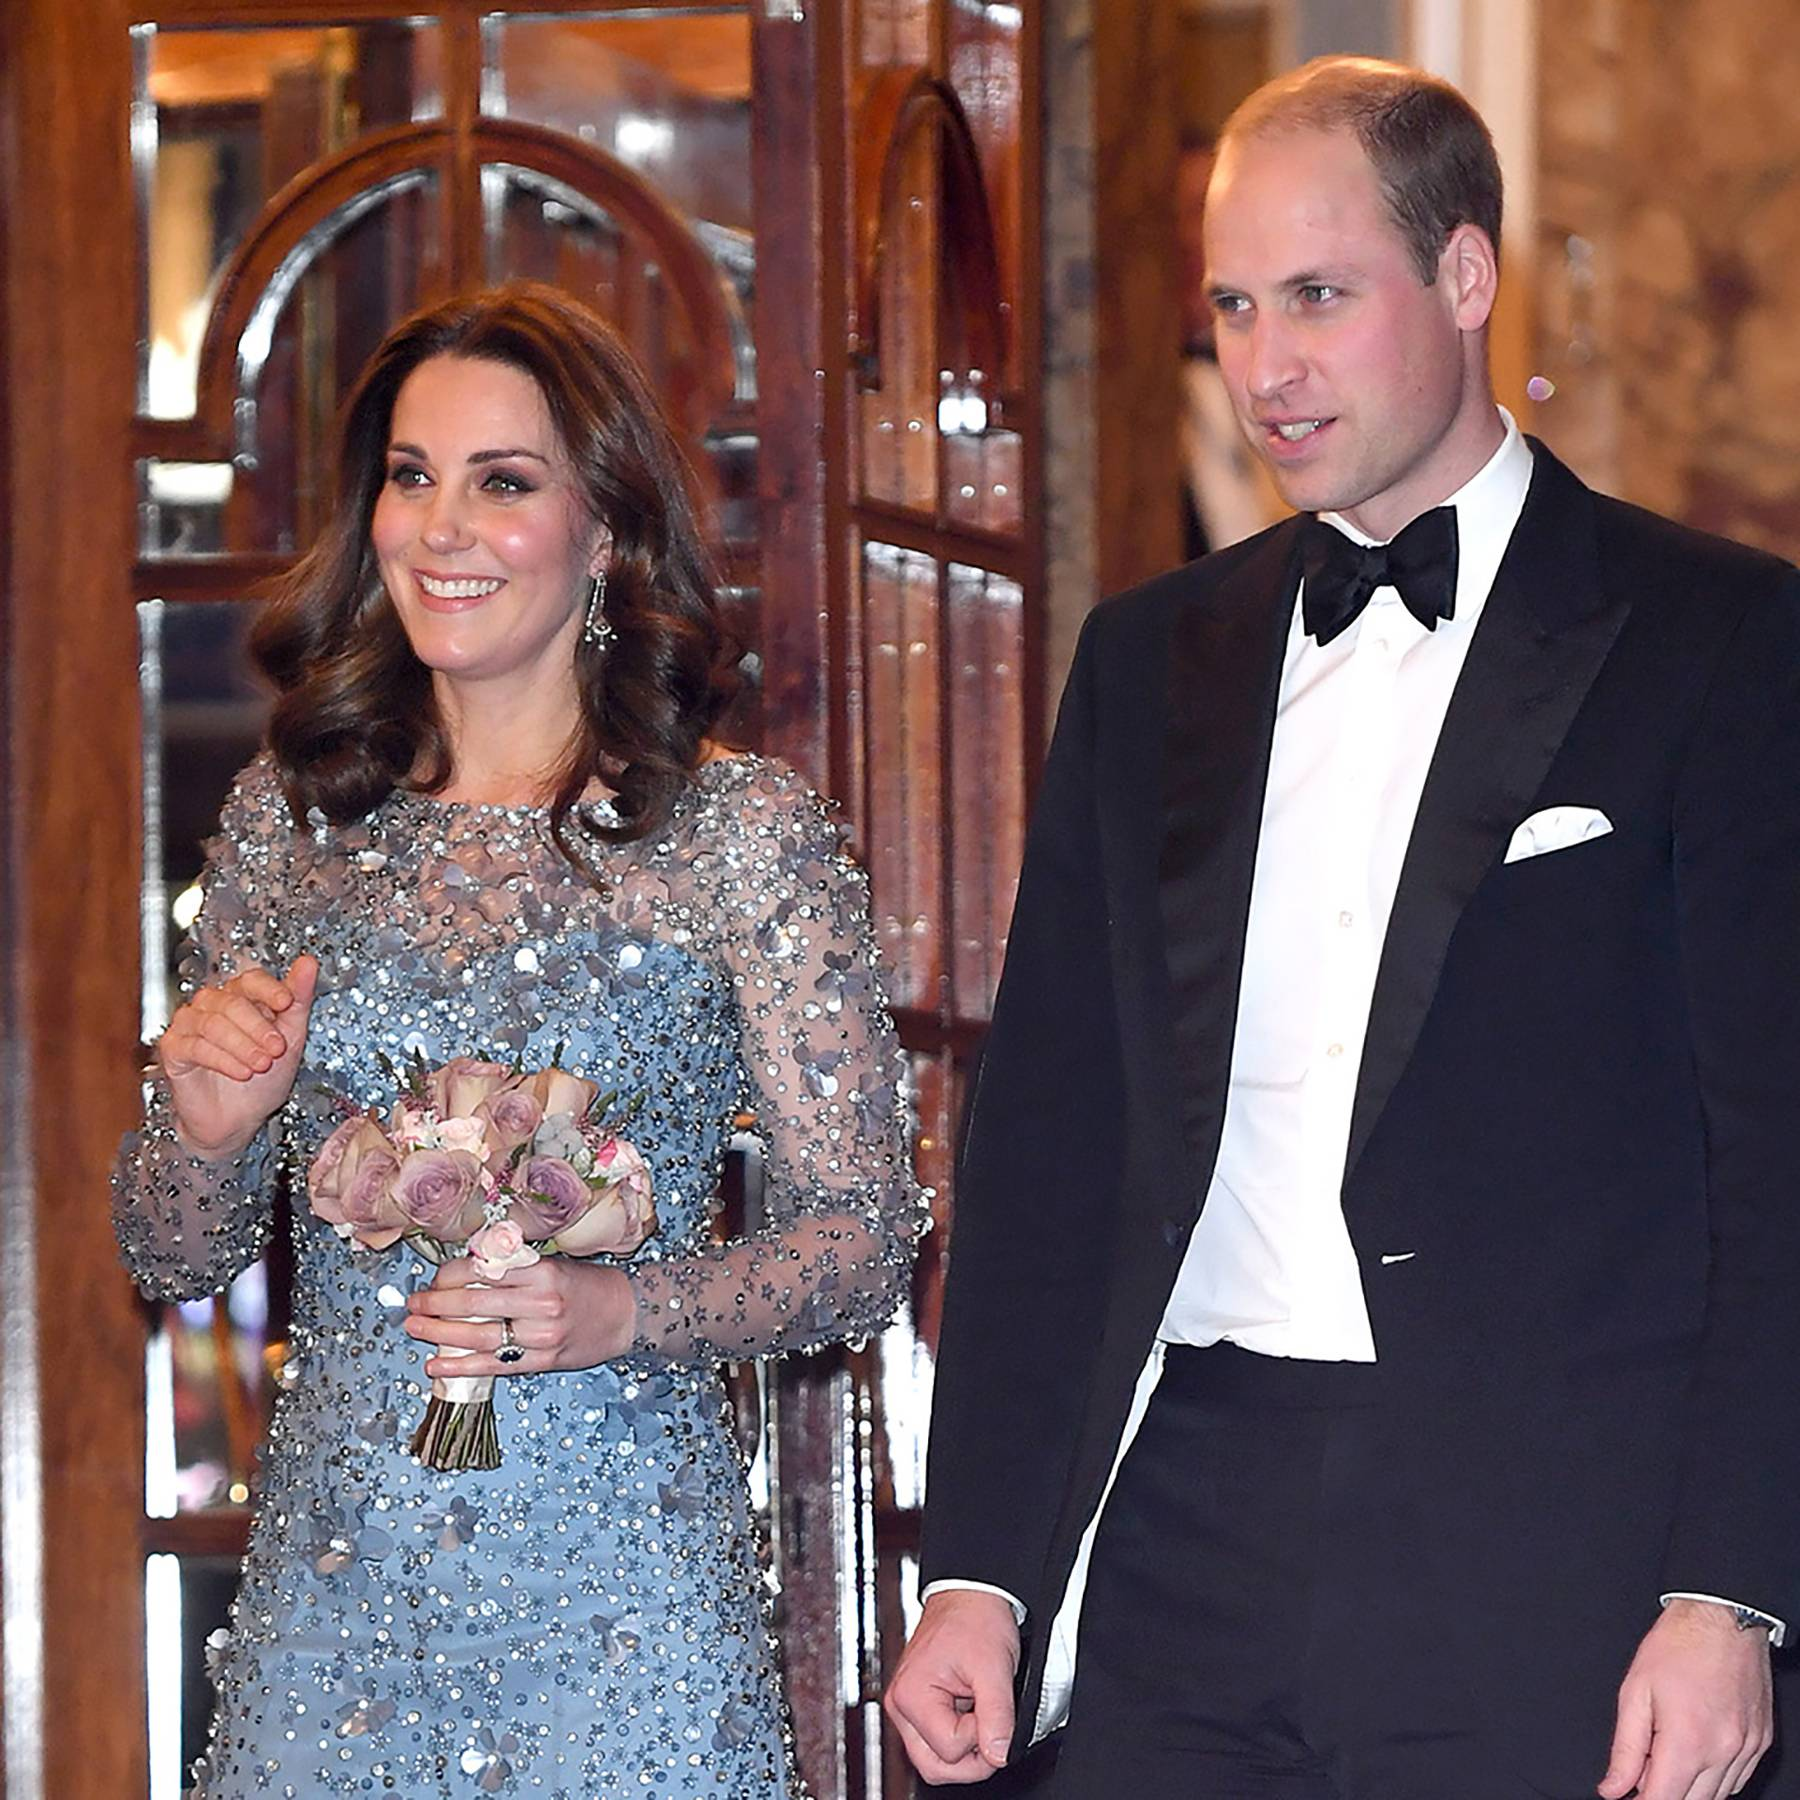 The Duke and Duchess of Cambridge will attend the Royal Variety Performance